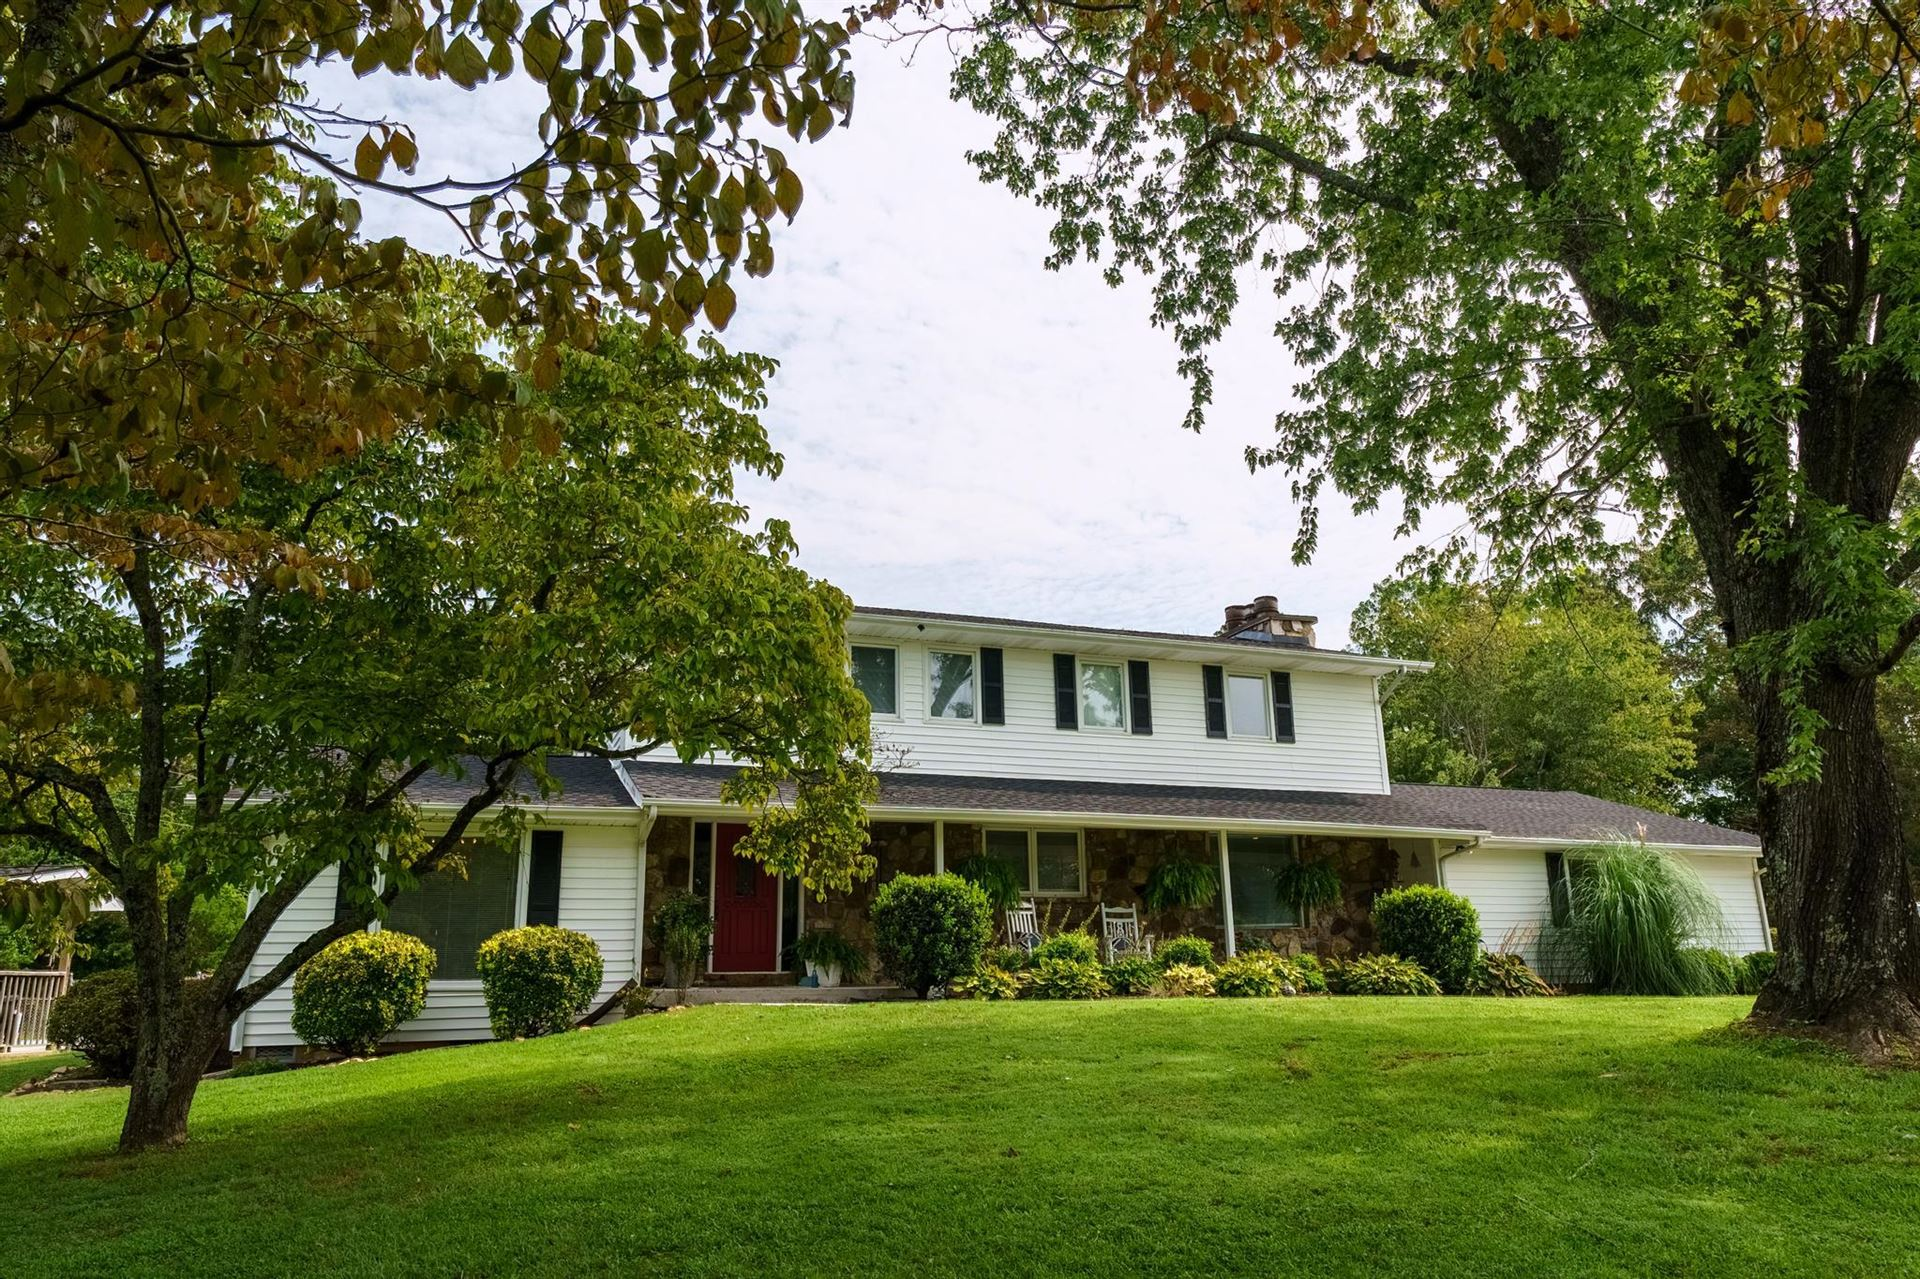 Photo of 1216 Winding Drive, Sevierville, TN 37876 (MLS # 1166862)